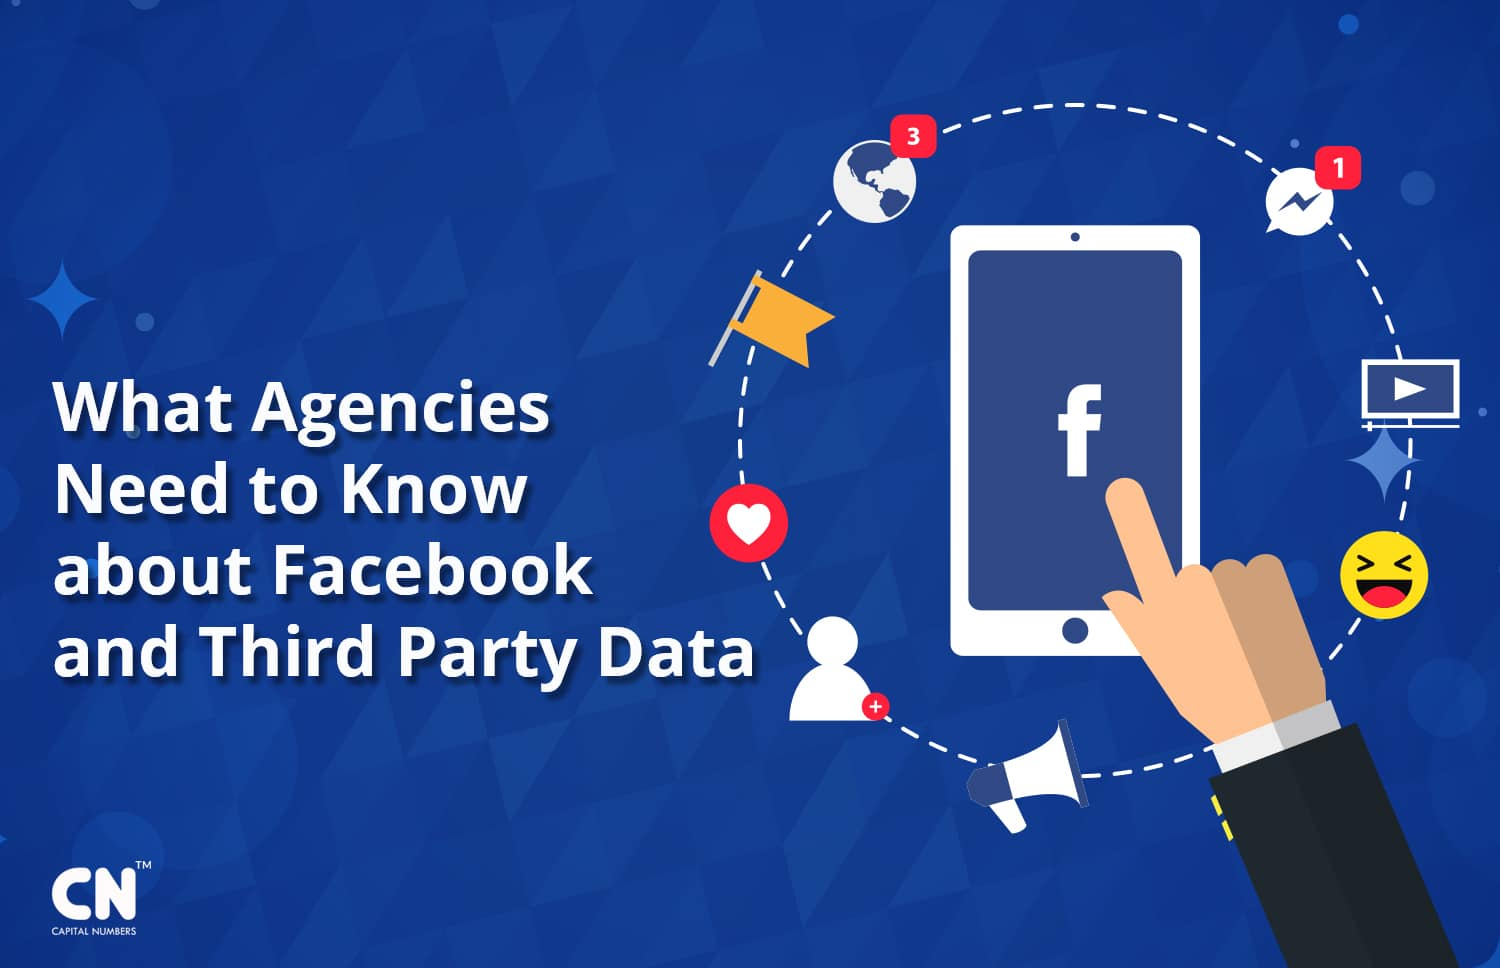 CN What Agencies Need to Know about Facebook and Third Party Data